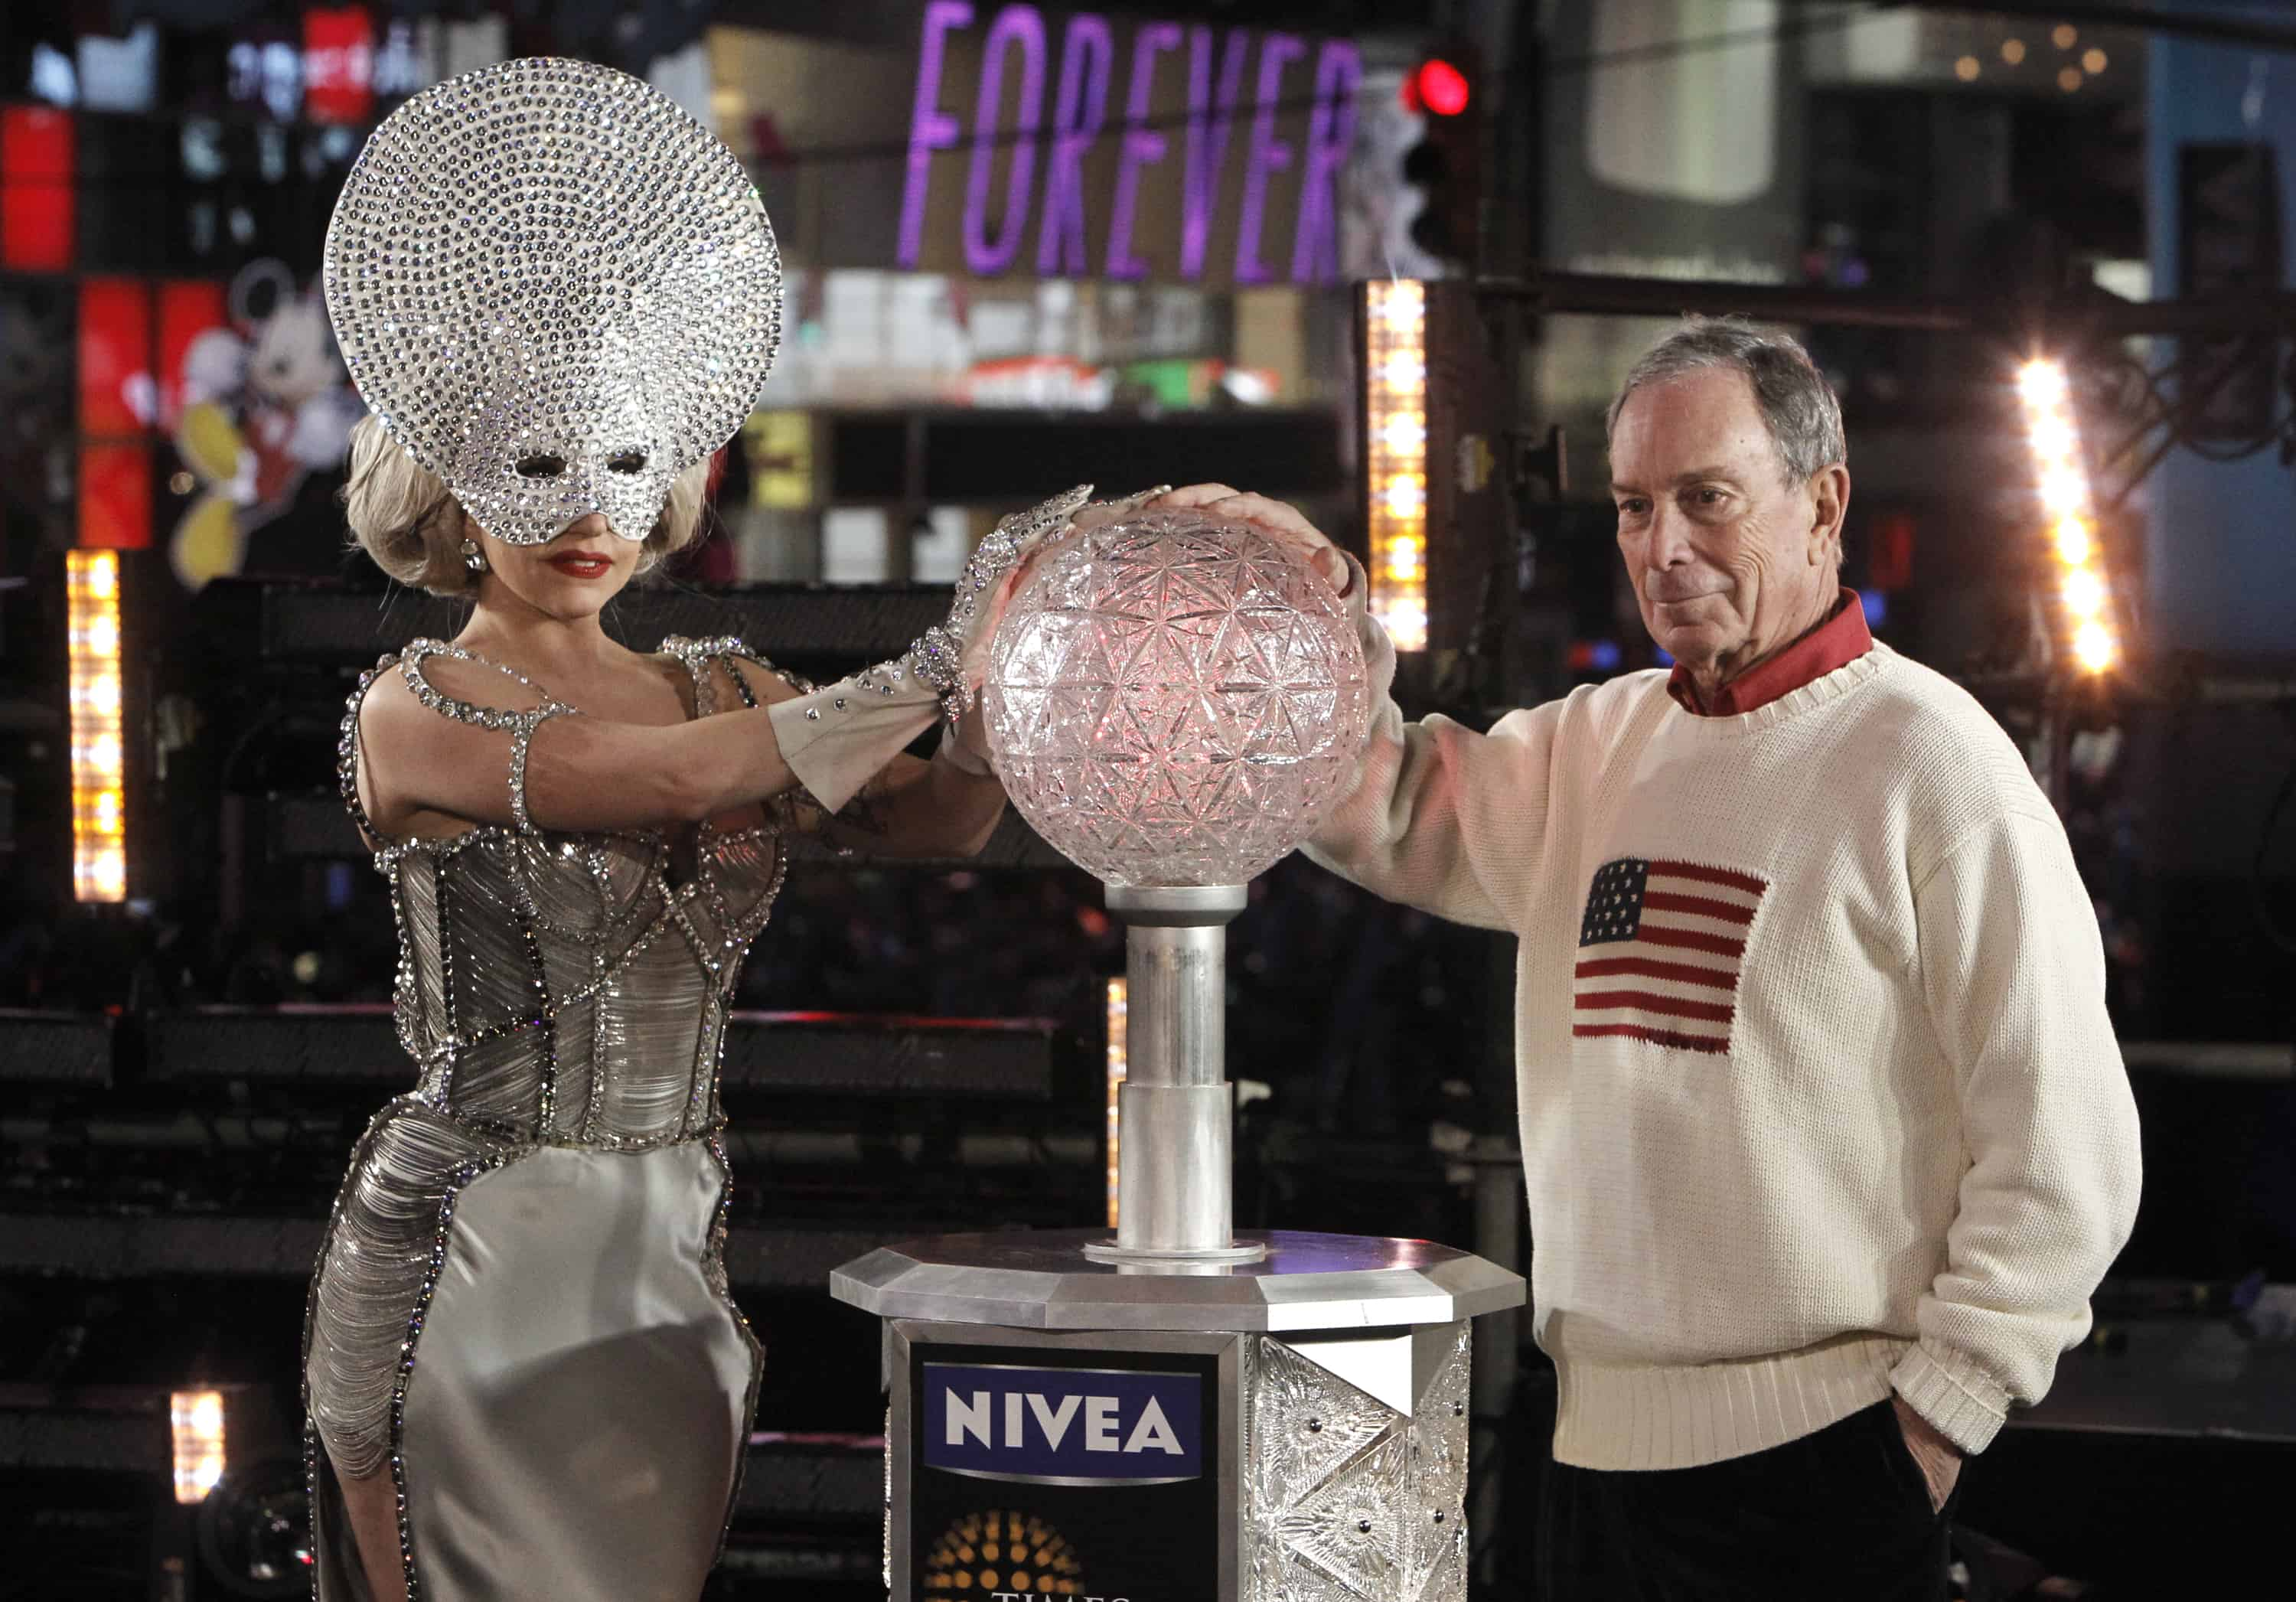 LADY GAGA, MAYOR MICHAEL BLOOMBERG COUNTDOWN THE NEW YEAR